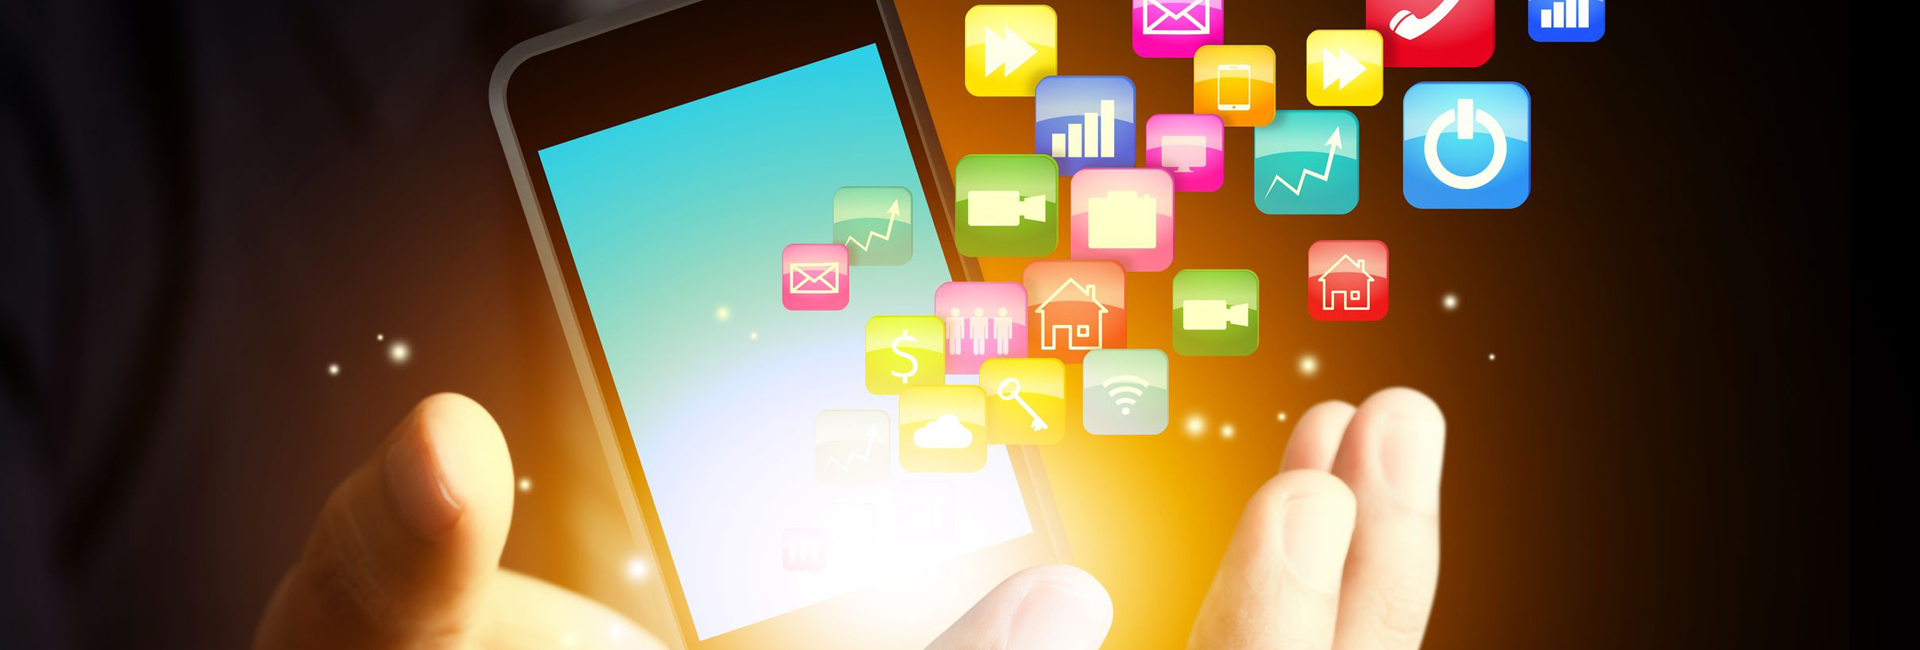 service-mobile-apps